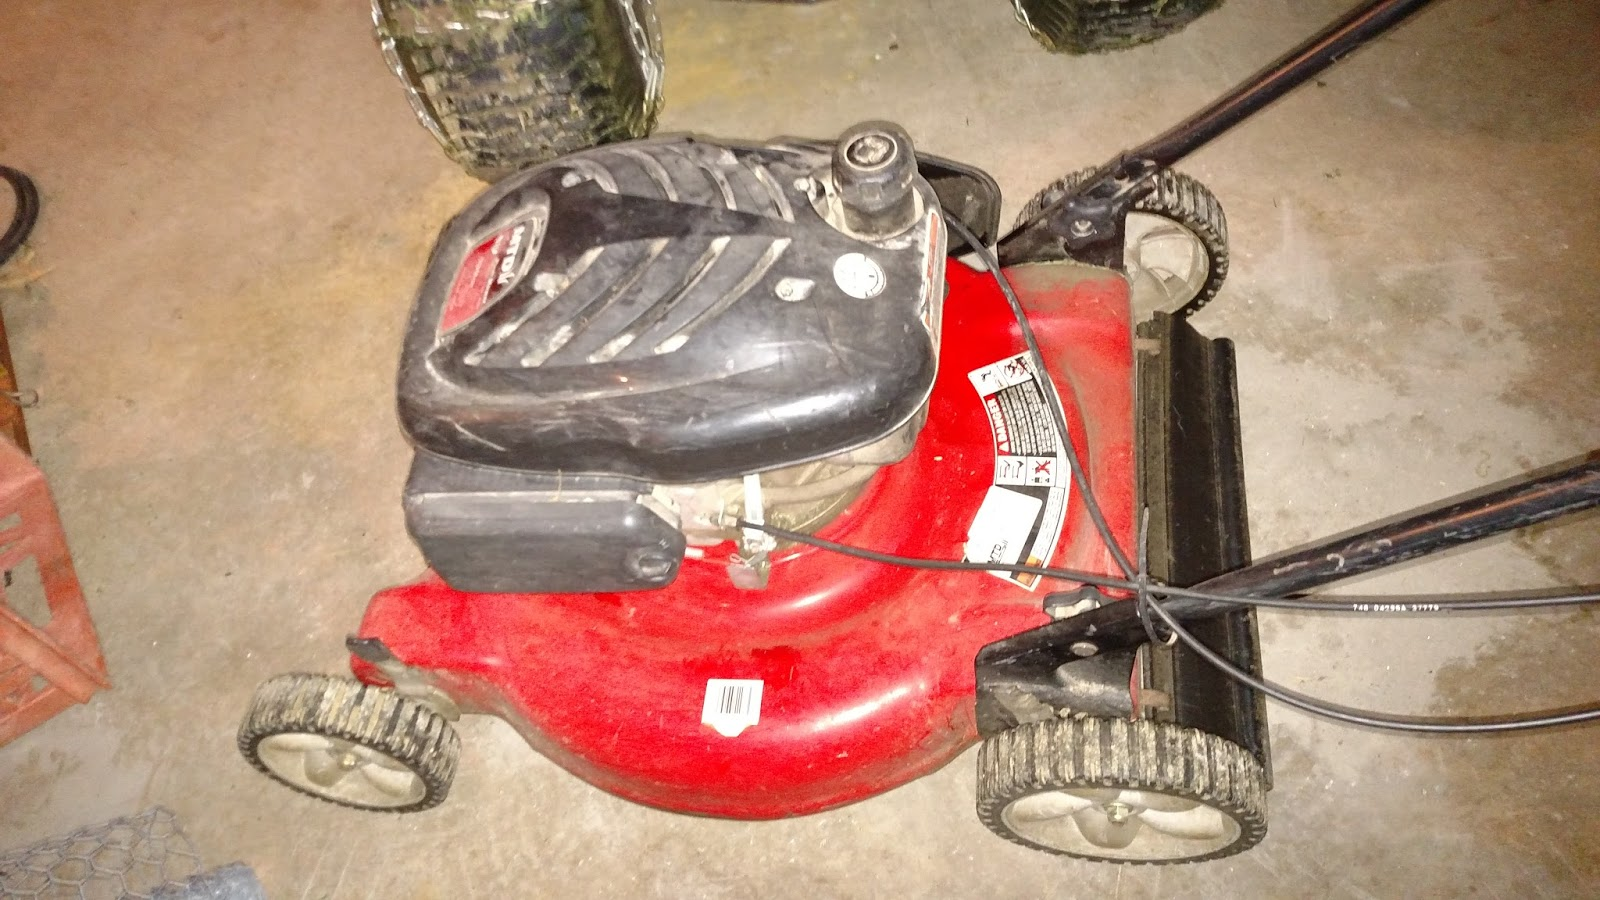 medium resolution of i replaced my broken gas mower with a cordless electric mower